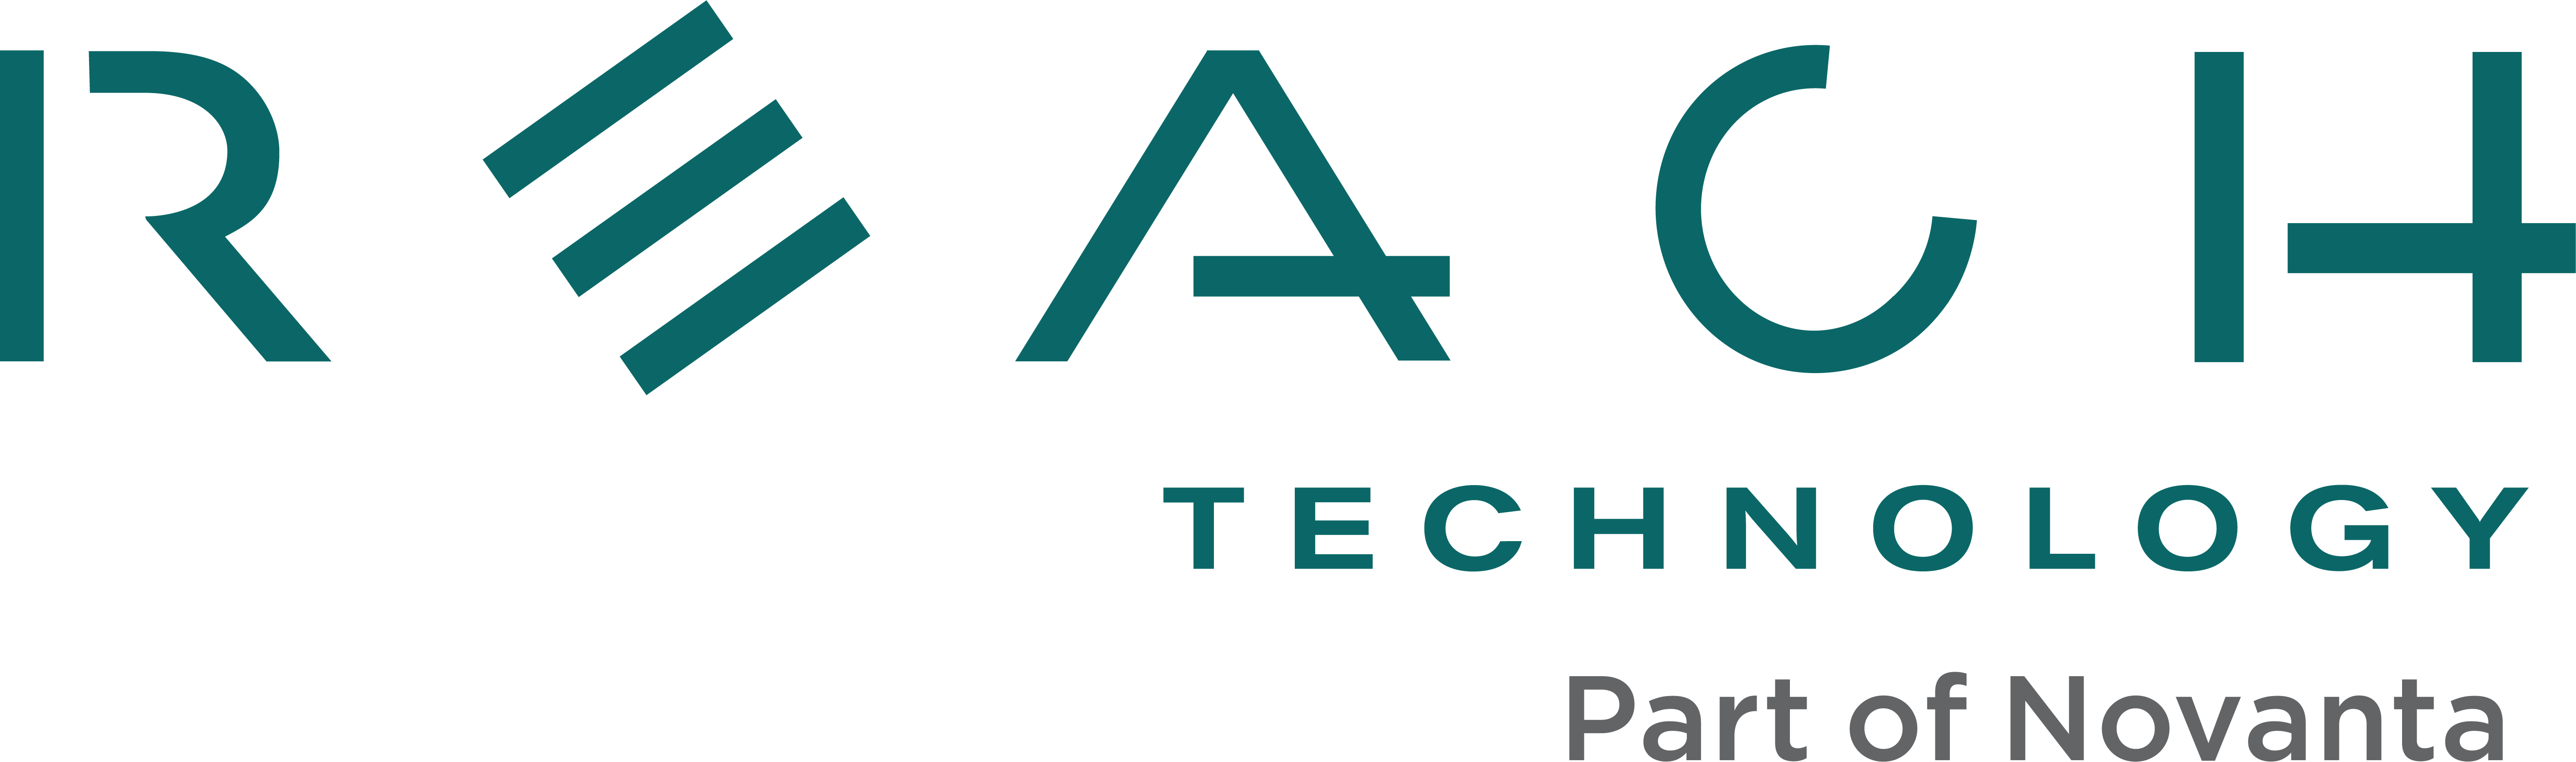 Reach Technology Logo